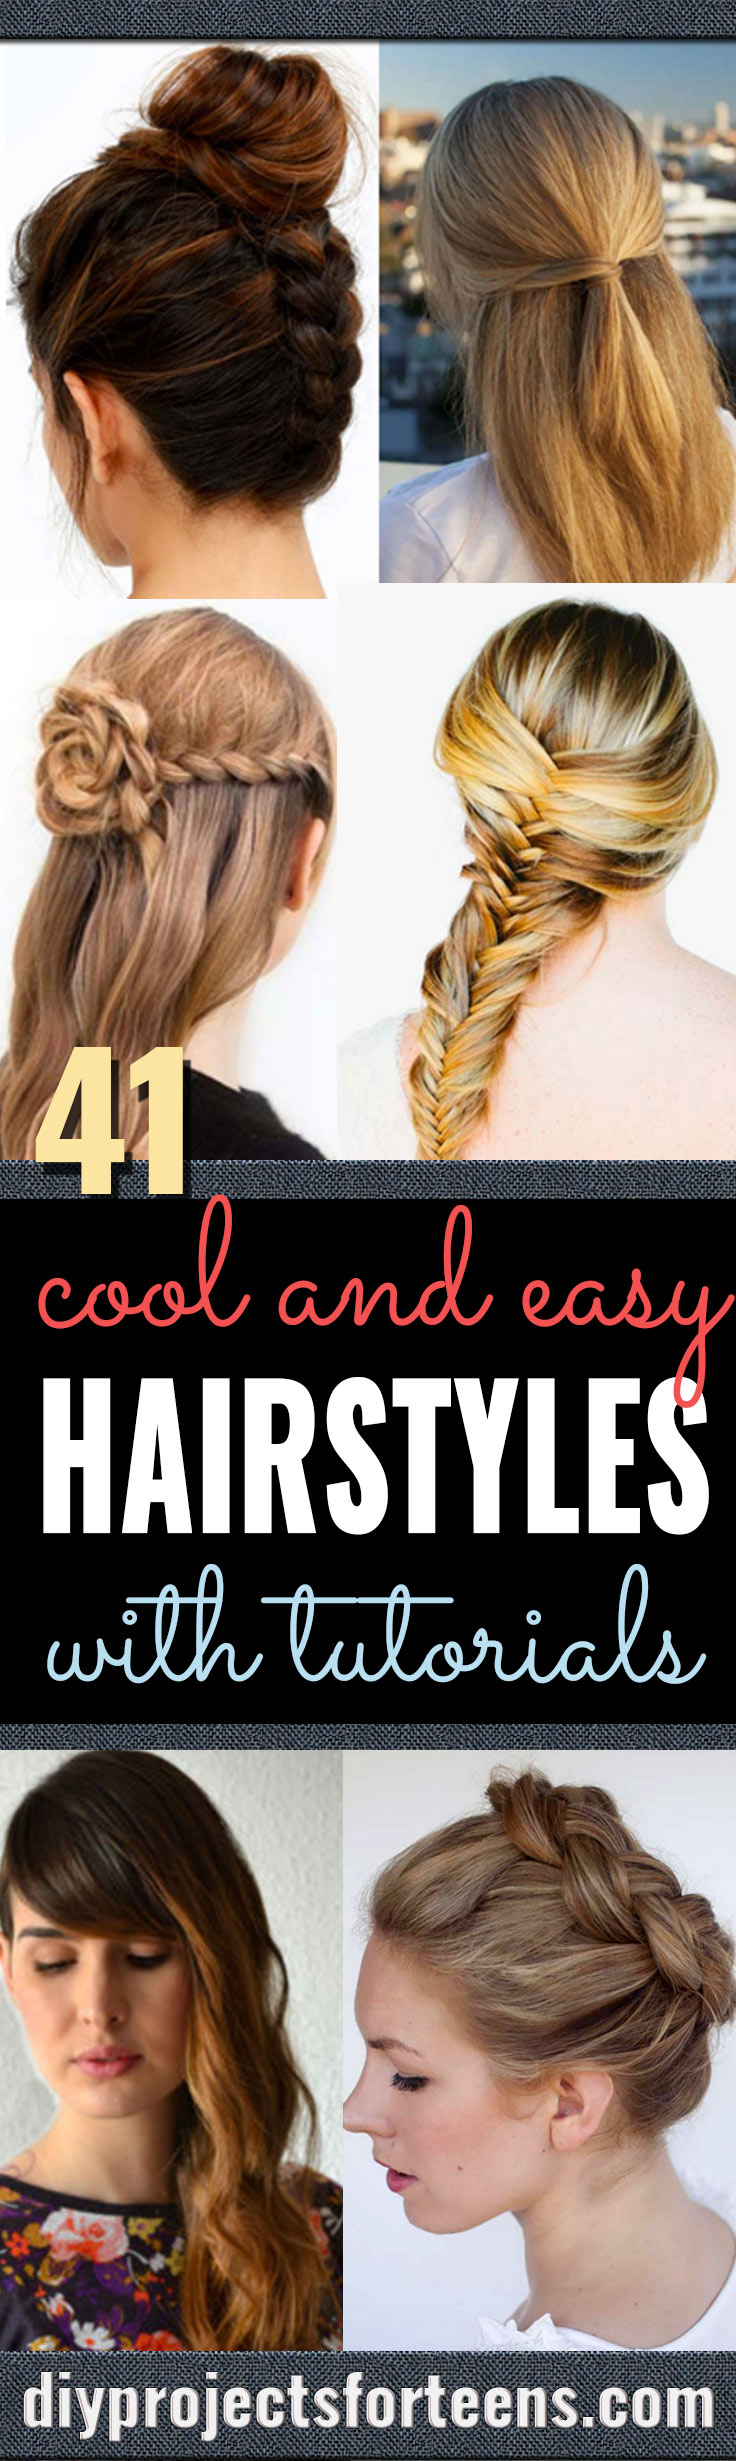 Incredible 41 Diy Cool Easy Hairstyles That Real People Can Actually Do At Short Hairstyles Gunalazisus